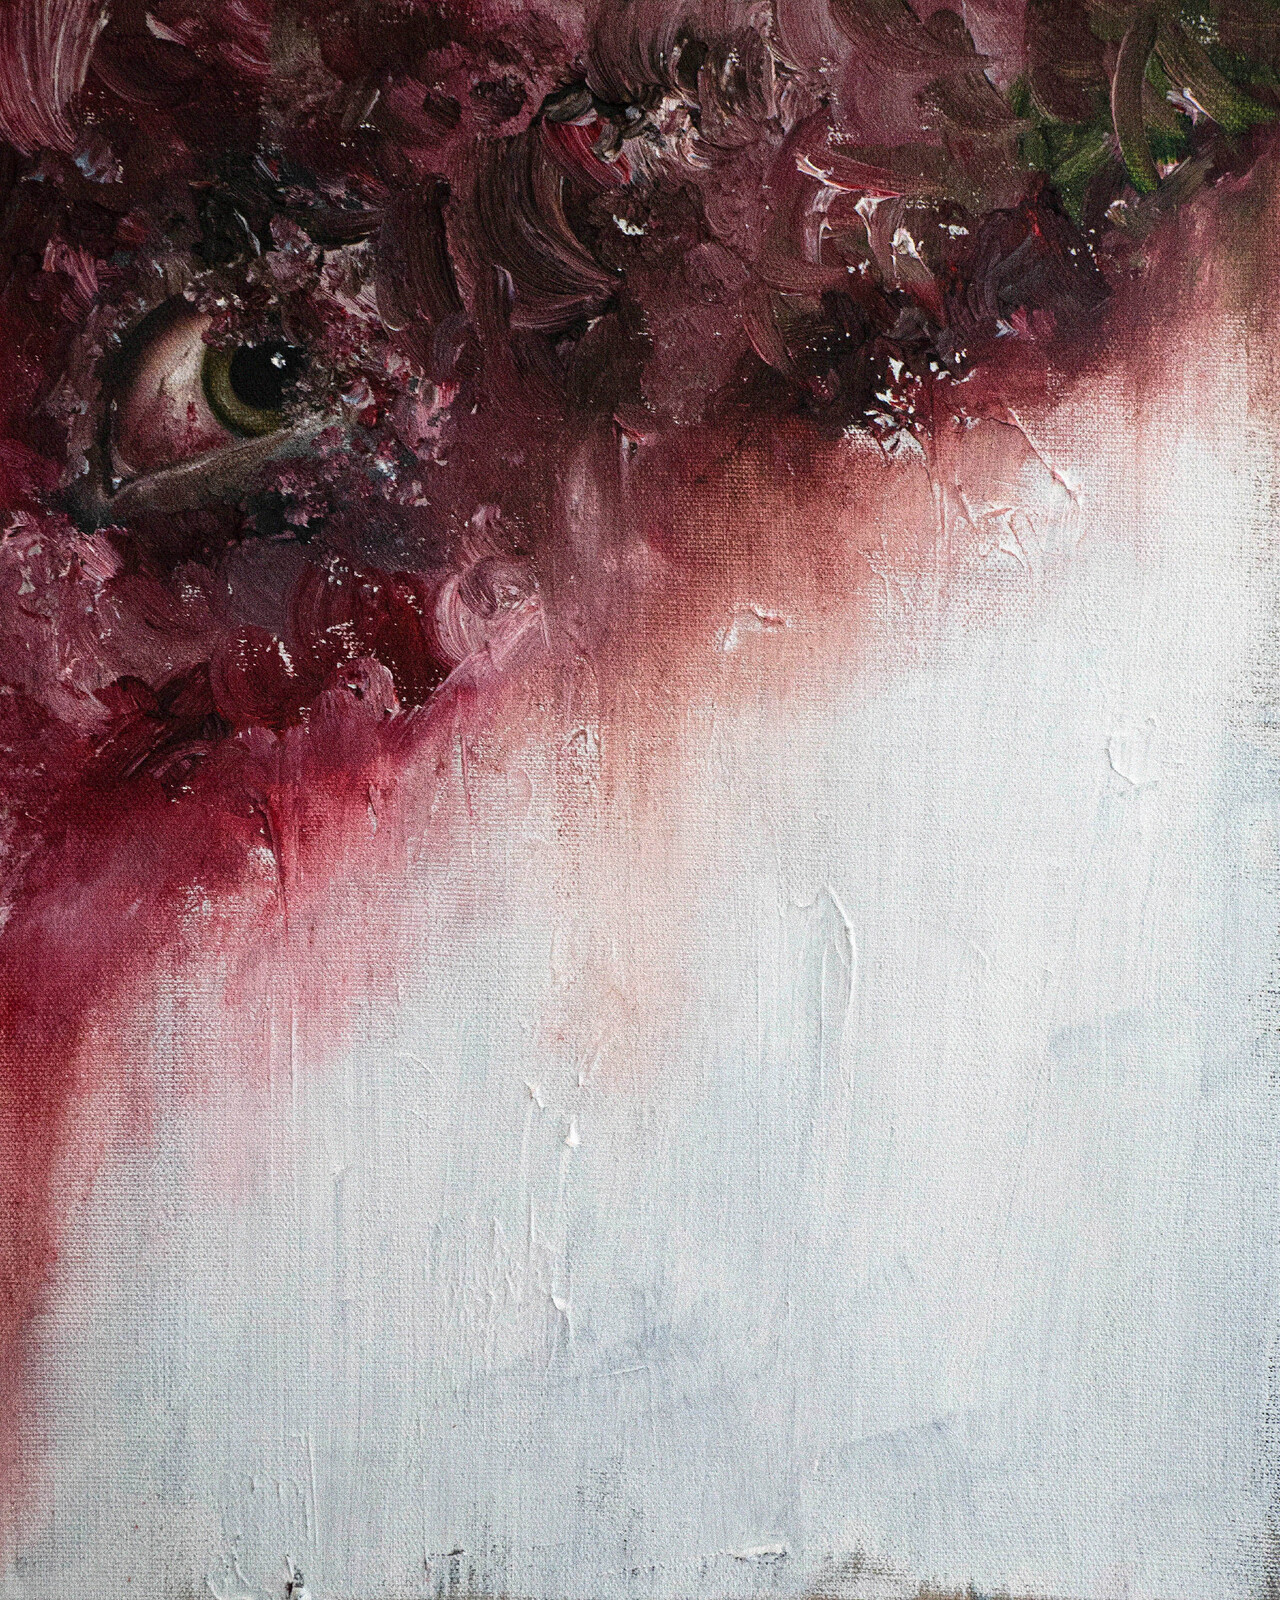 Buried in Flesh (Oils).